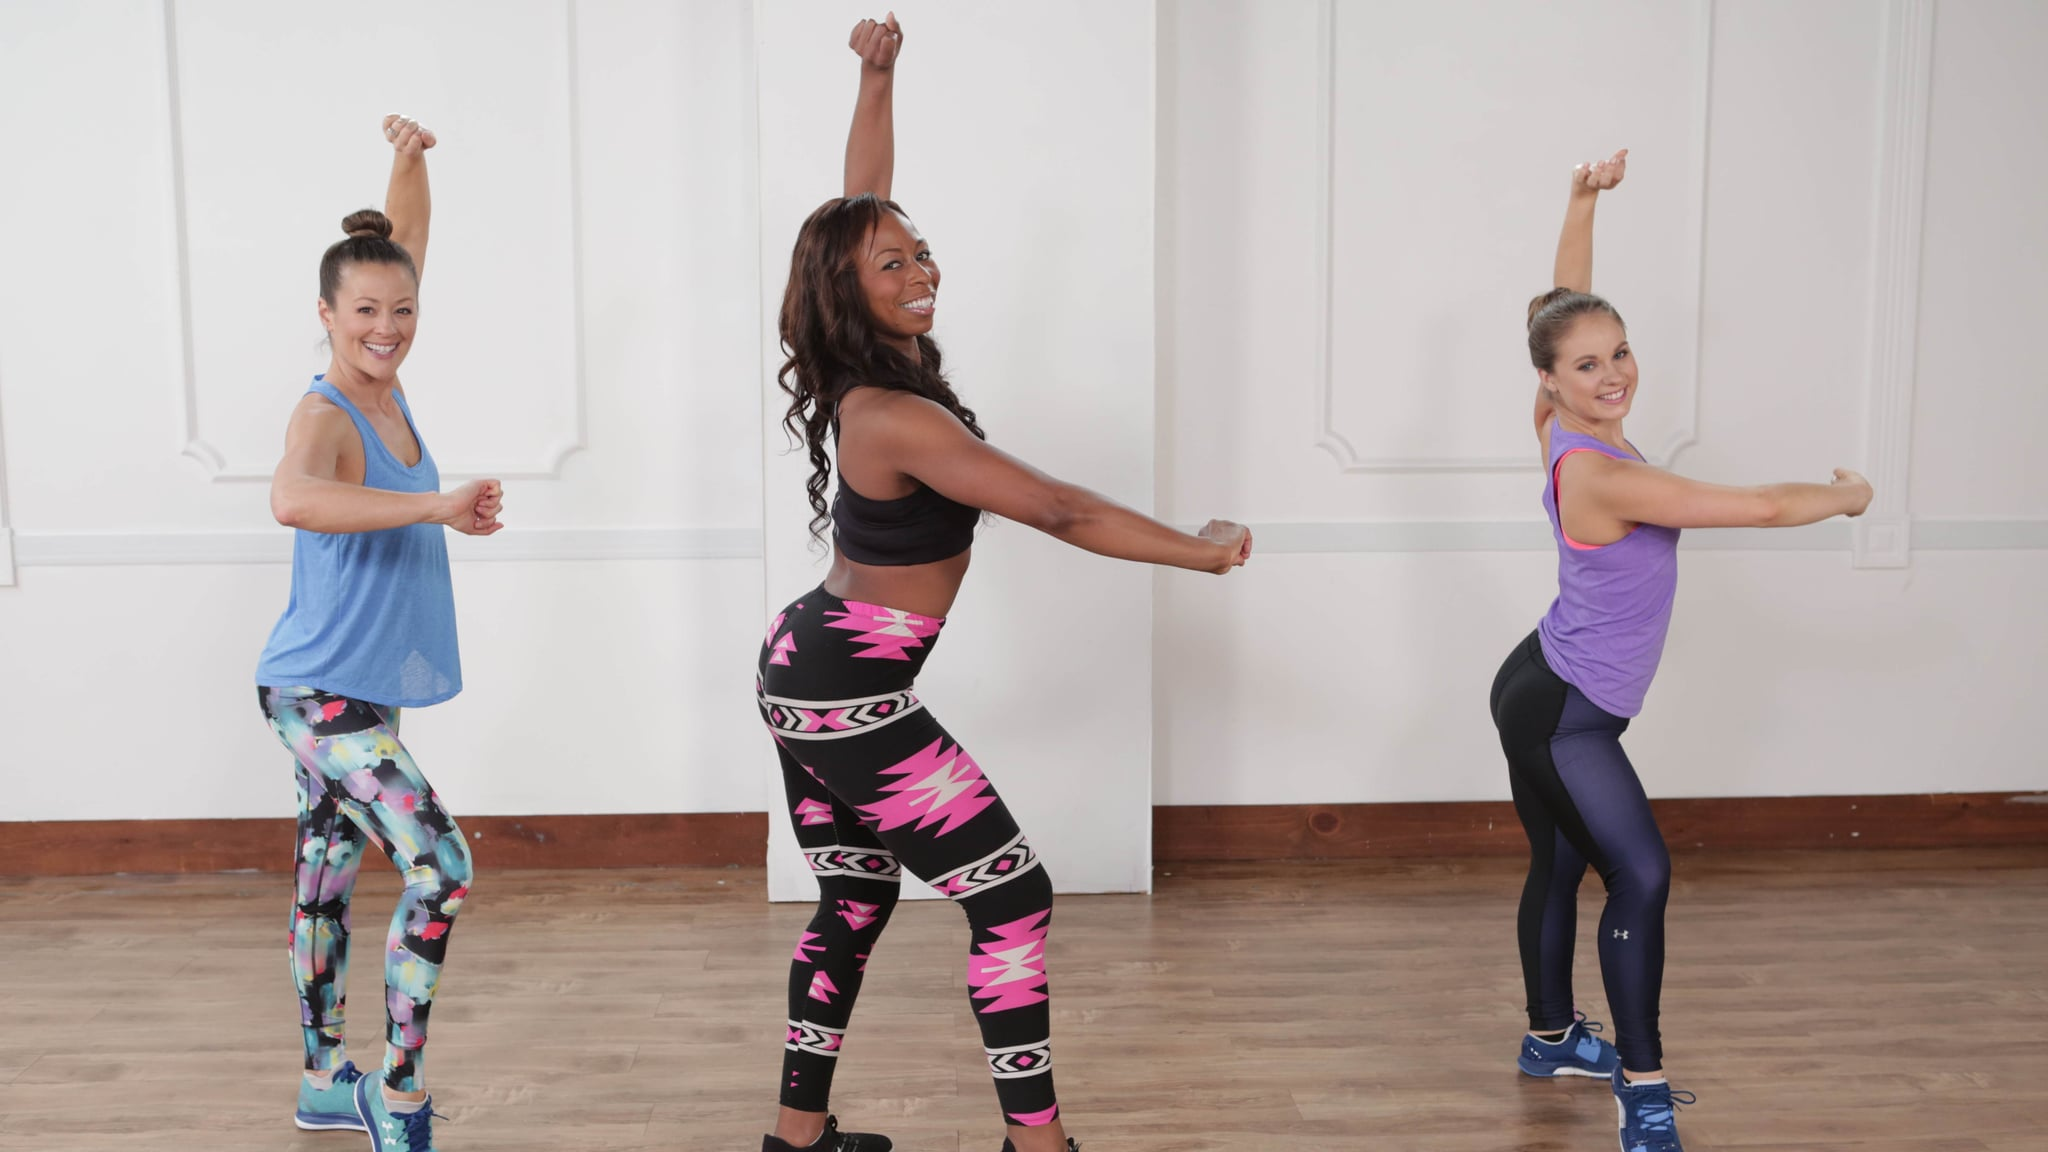 The Secret to Burning More Calories in Zumba? Have Fun